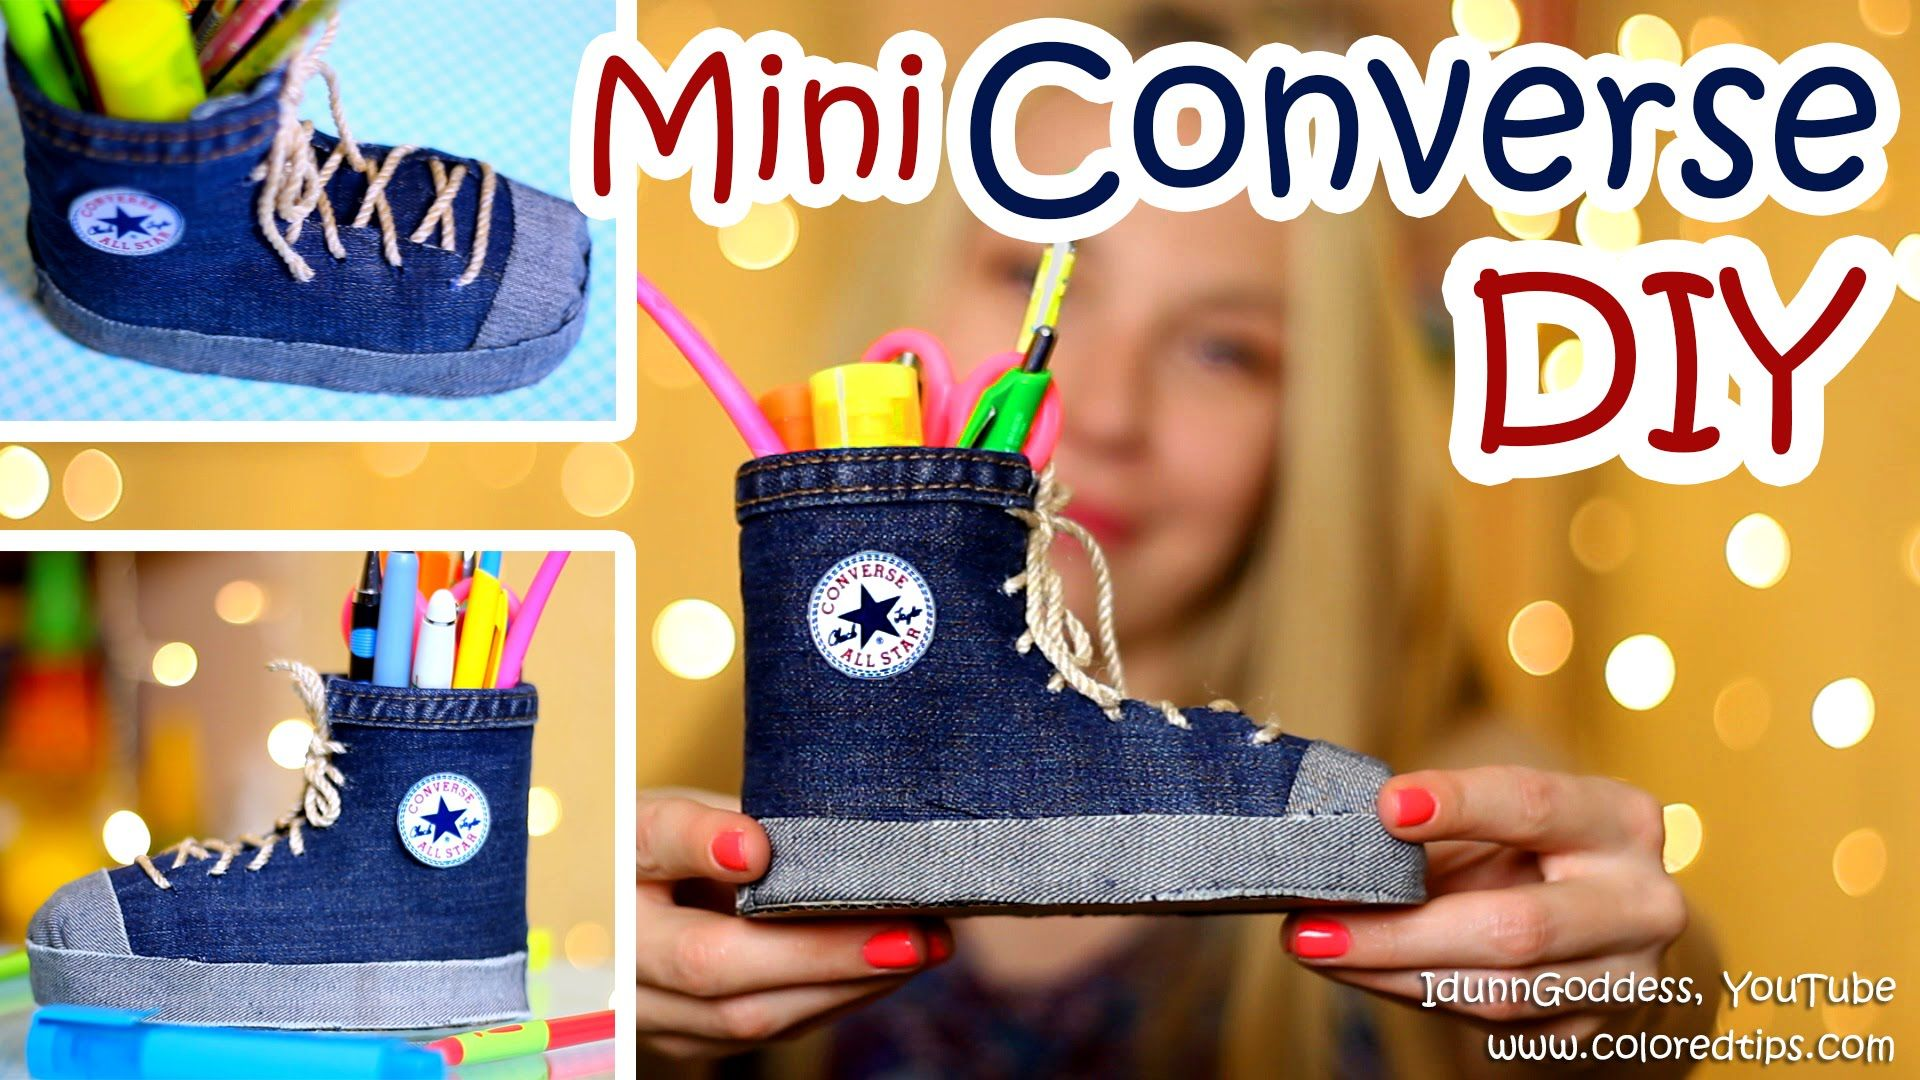 DIY Mini Converse Shoes Pen Holders Out Of An Old Jeans and Plastic Bott...